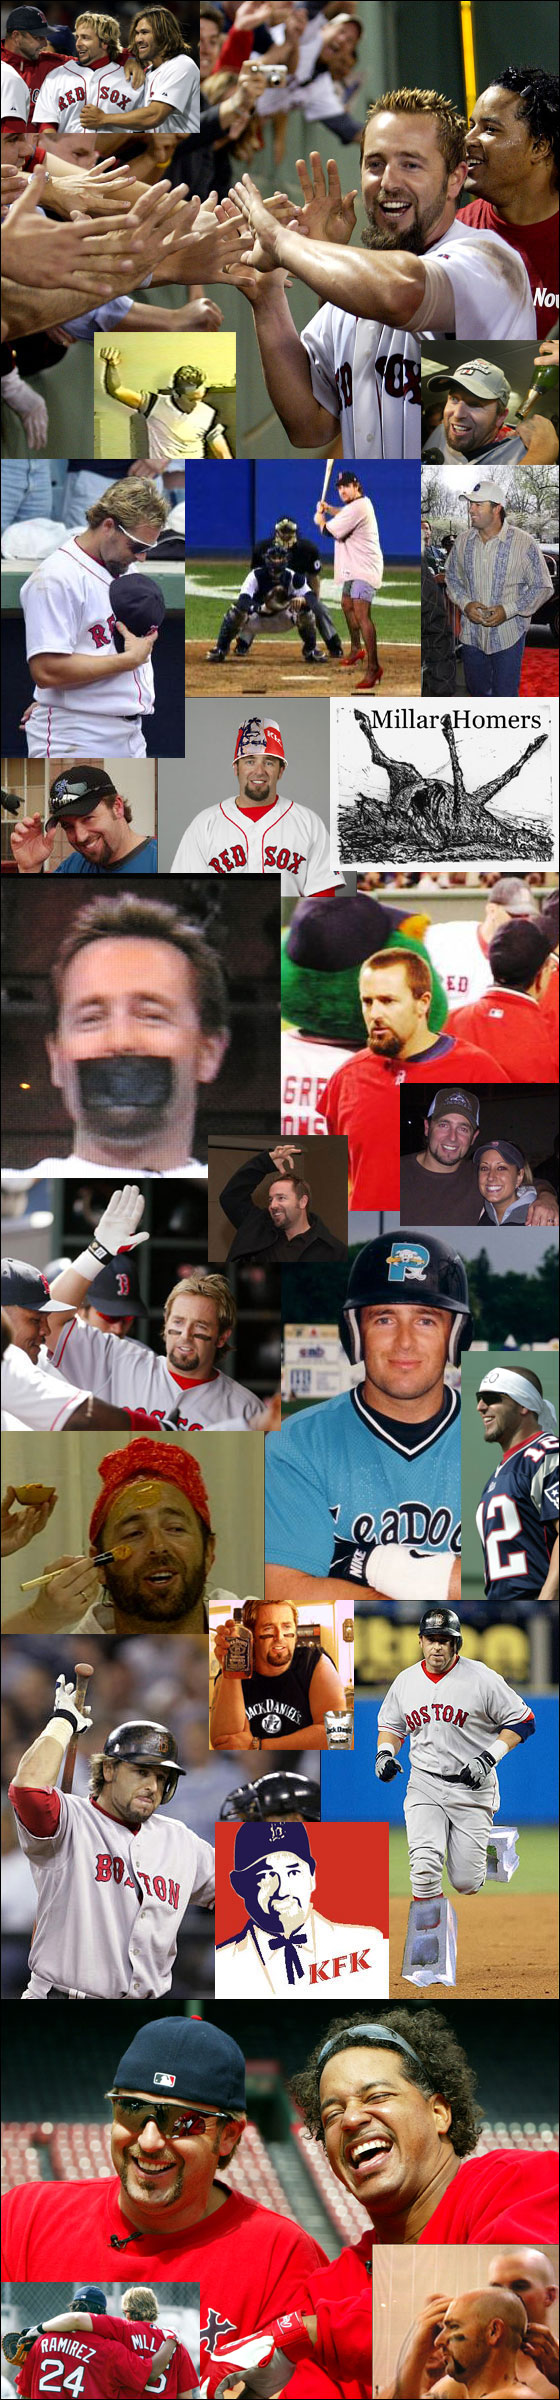 Boston Dirt Dogs: Thanks for the memories... and all the fun Kevin